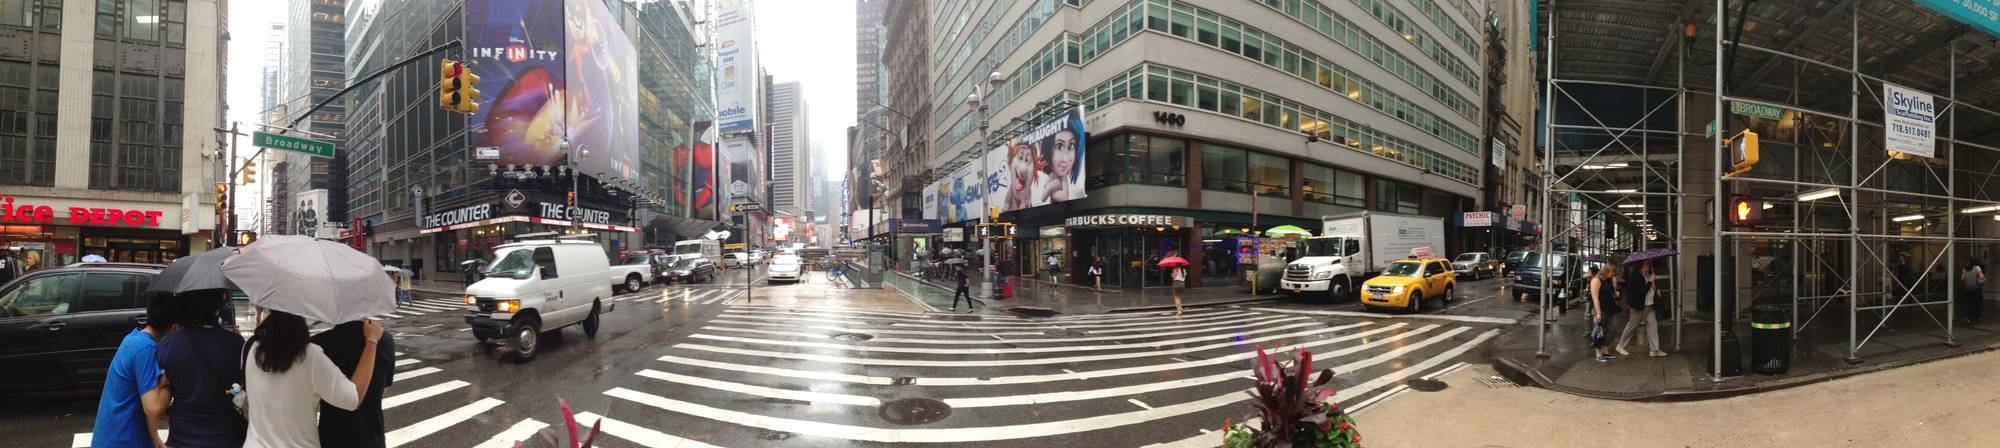 Panorama of Times Square intersection